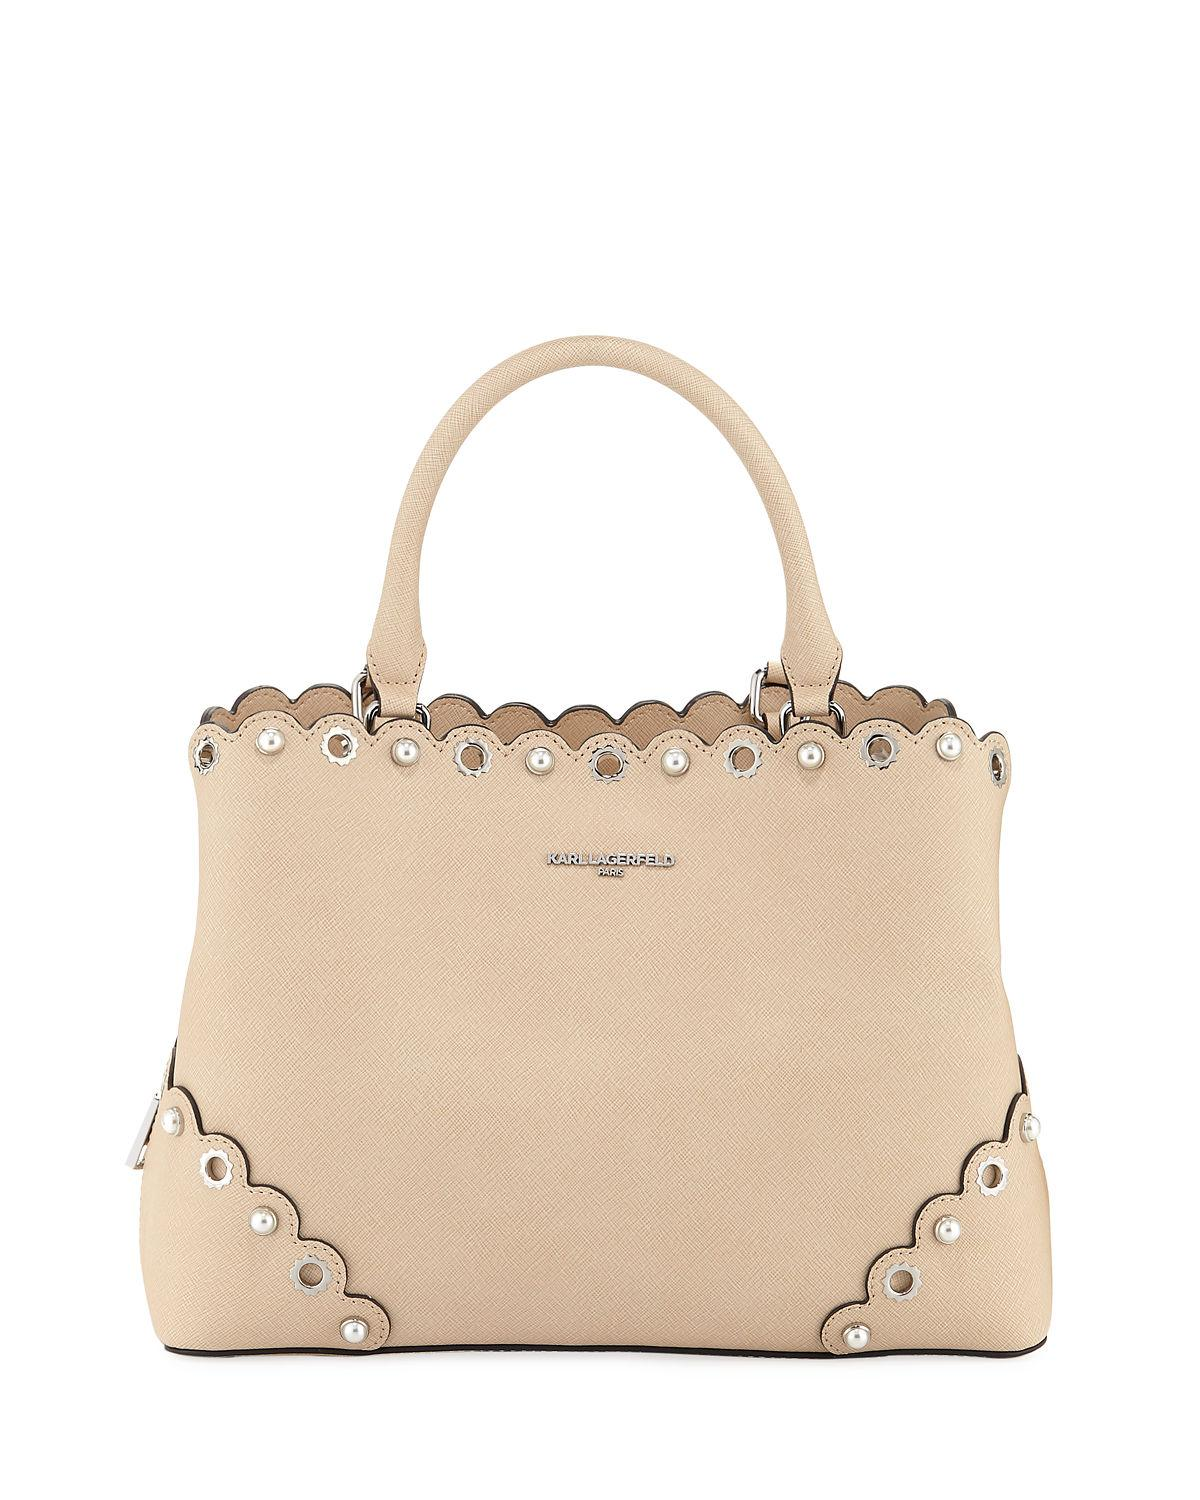 Karl Lagerfeld Elsa Saffiano Leather Satchel Bag In Sand